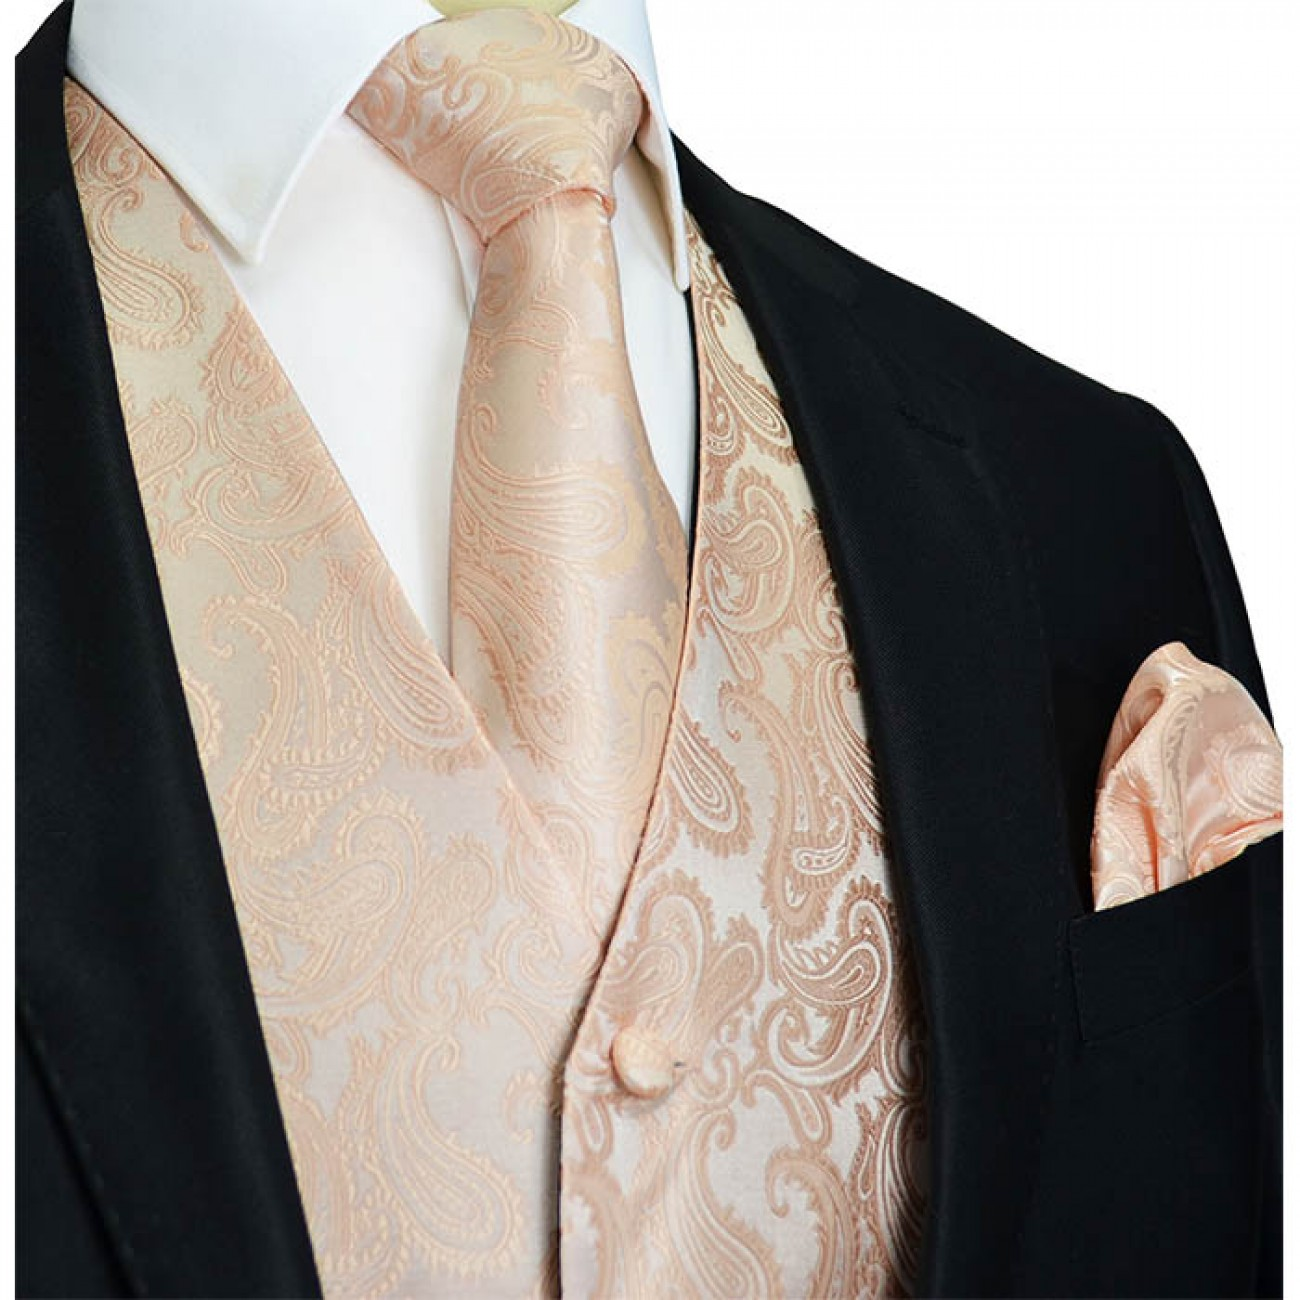 Coral Wedding vest set with mens tie and pocket square